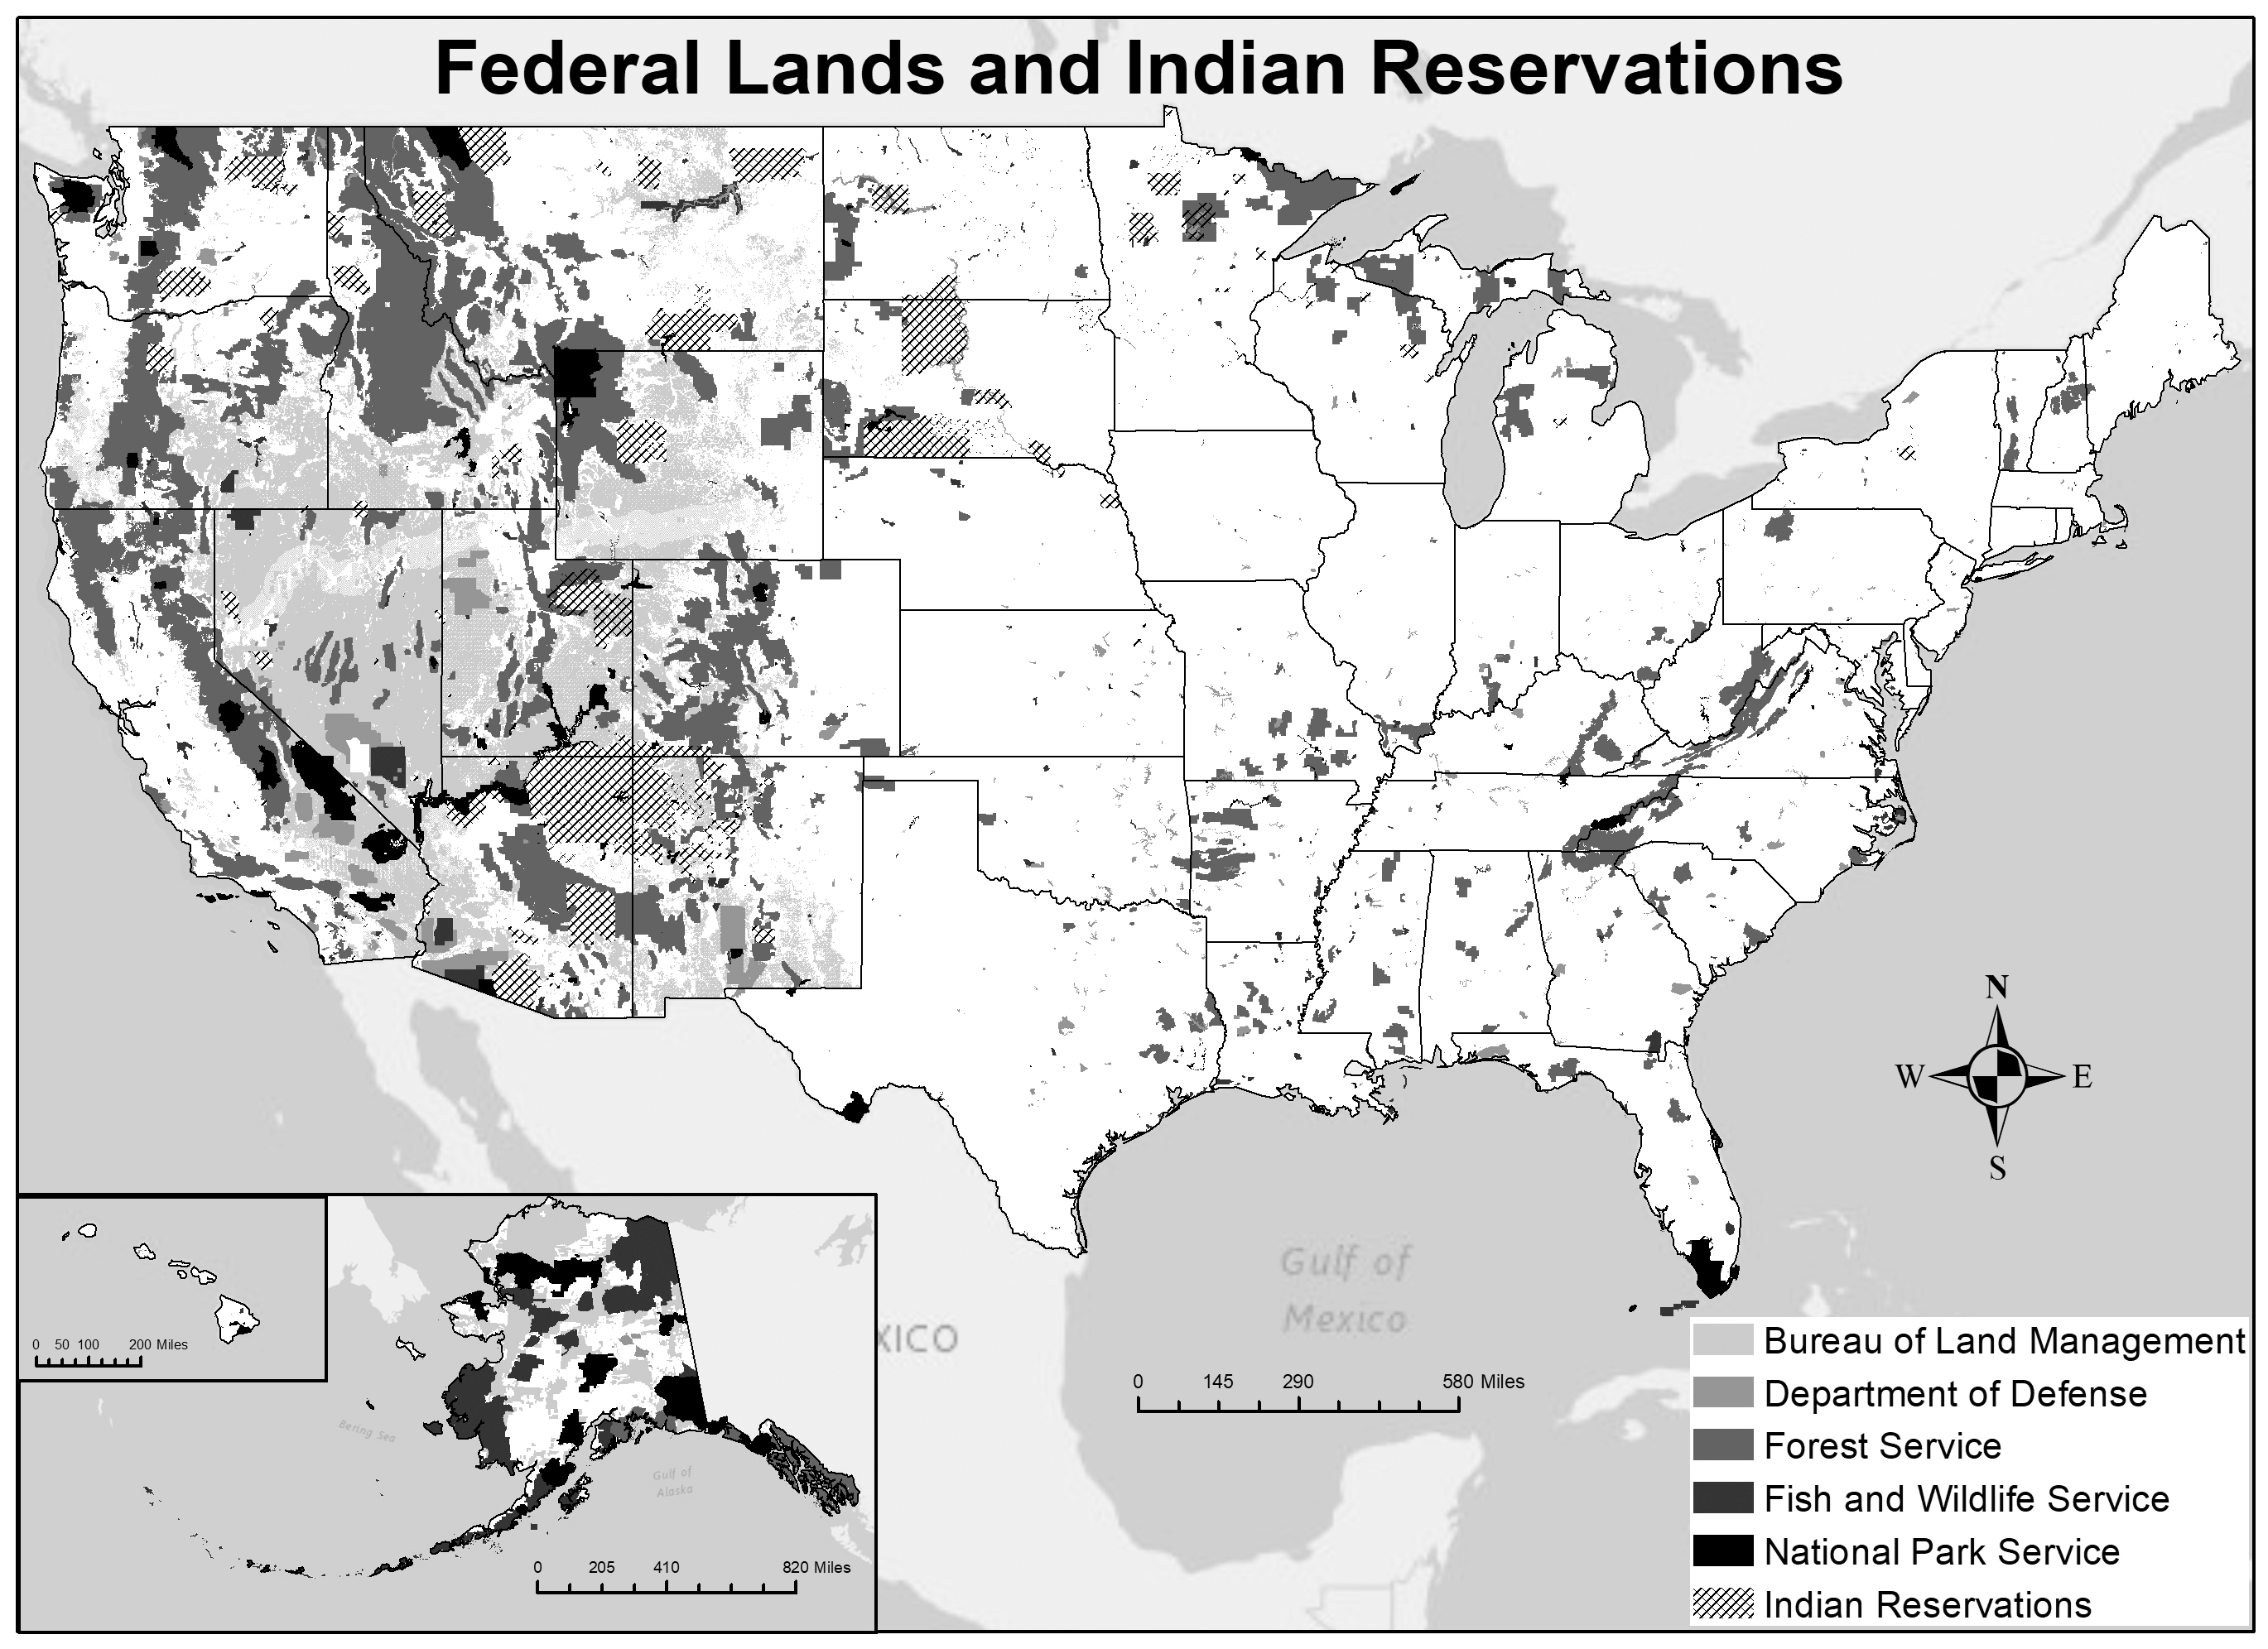 Federal lands and Indian reservations.